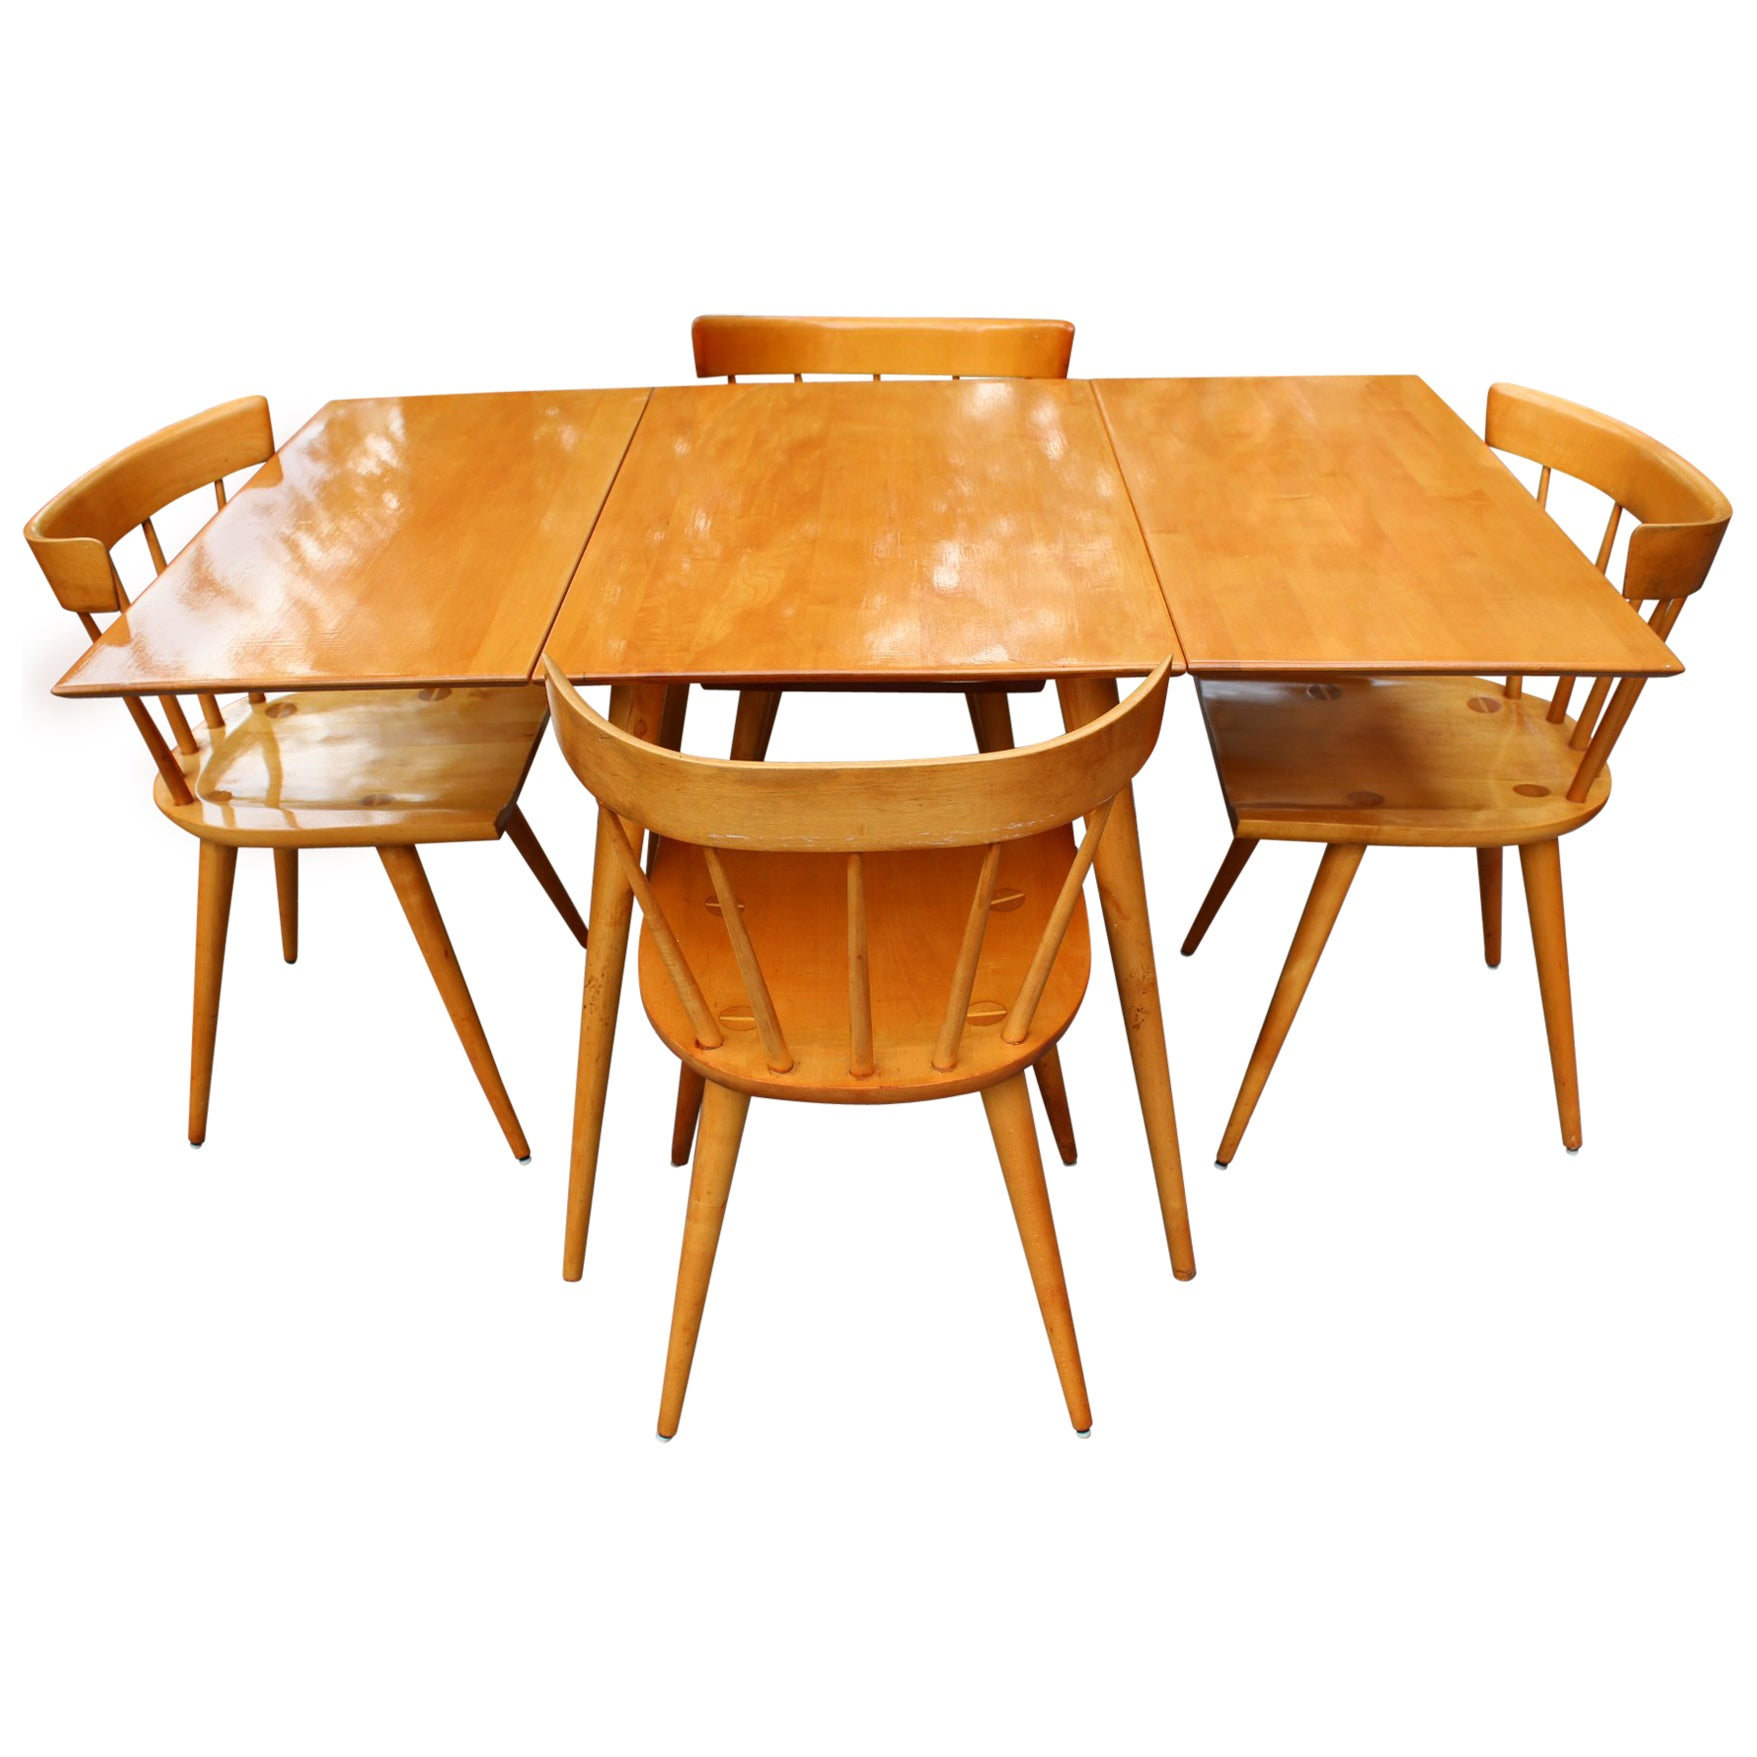 Paul McCobb Mid Century Modern Maple Wood Dining Room Set At 1stdibs